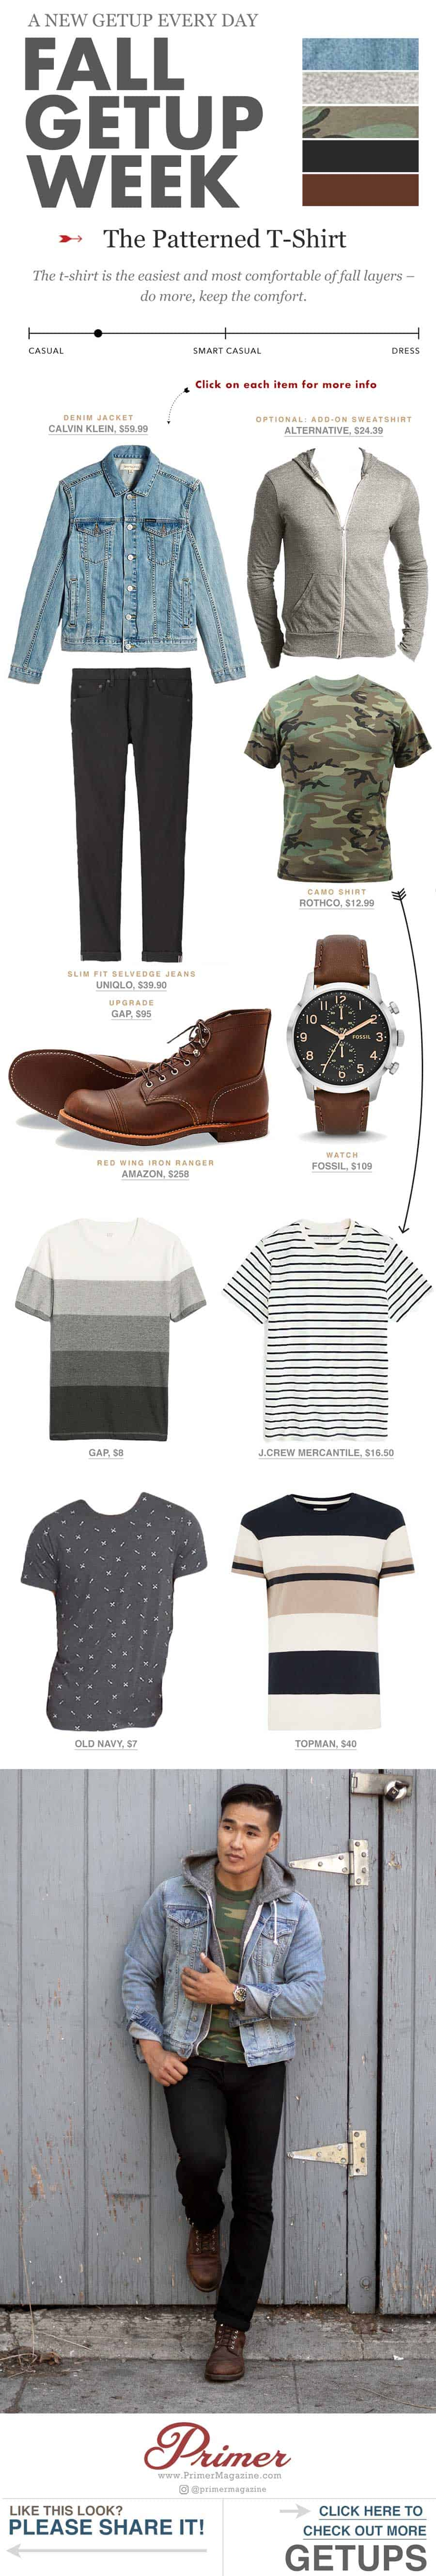 The Getup - men fall rugged fashion